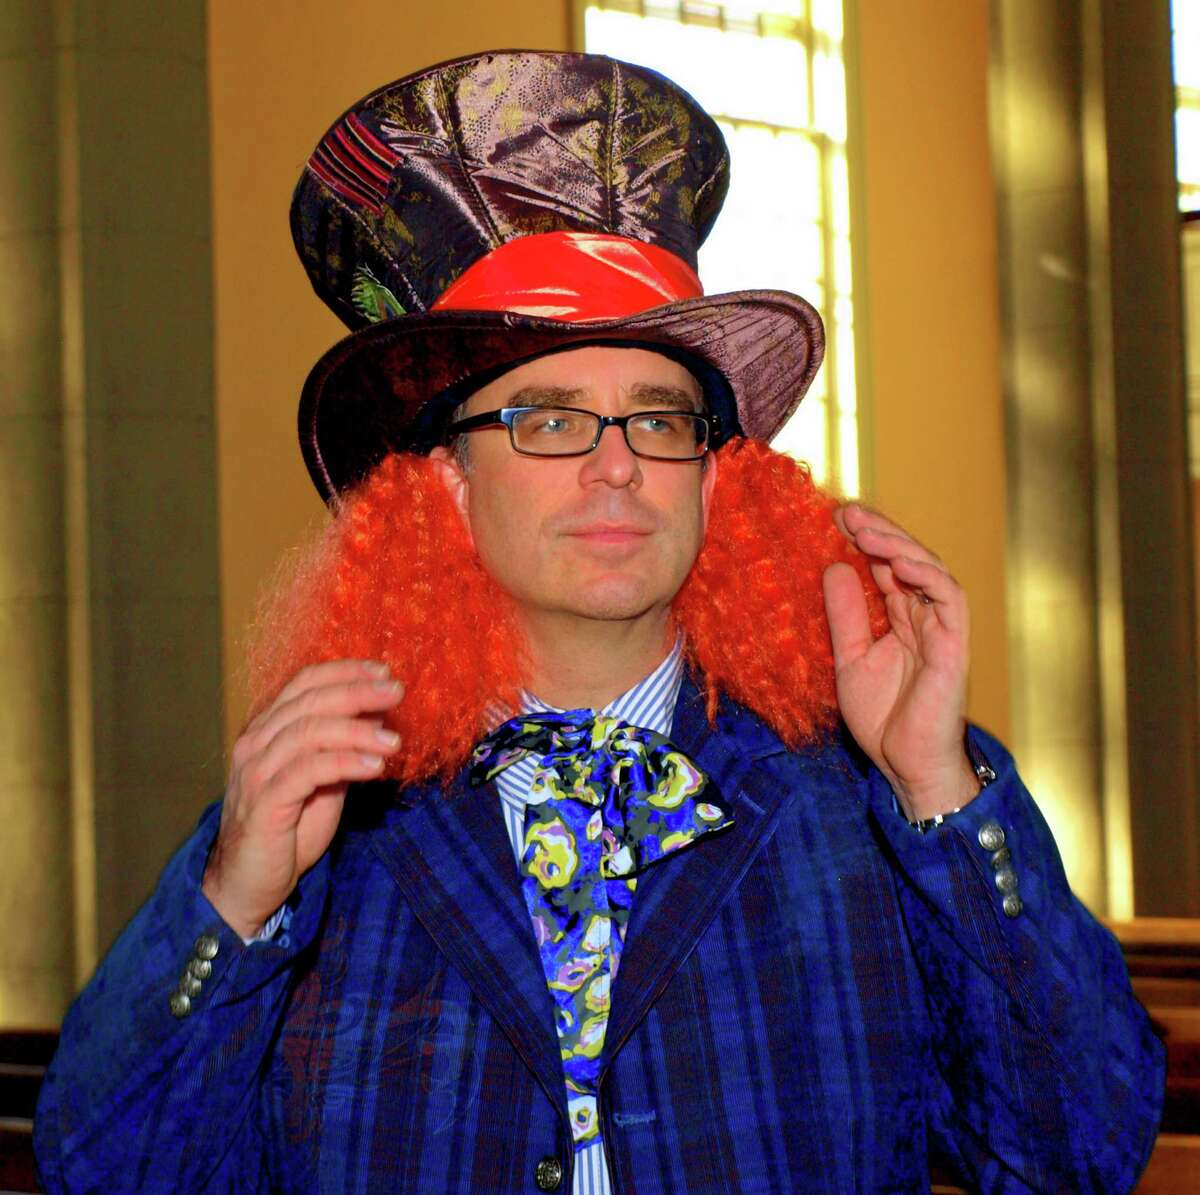 """Dr. John Michniewicz will perform in costume on the pipe organ at the 11th annual """"Pipescreams"""" Halloween Musical Extravaganza Concert Sunday, Oct. 21, in Bridgeport."""